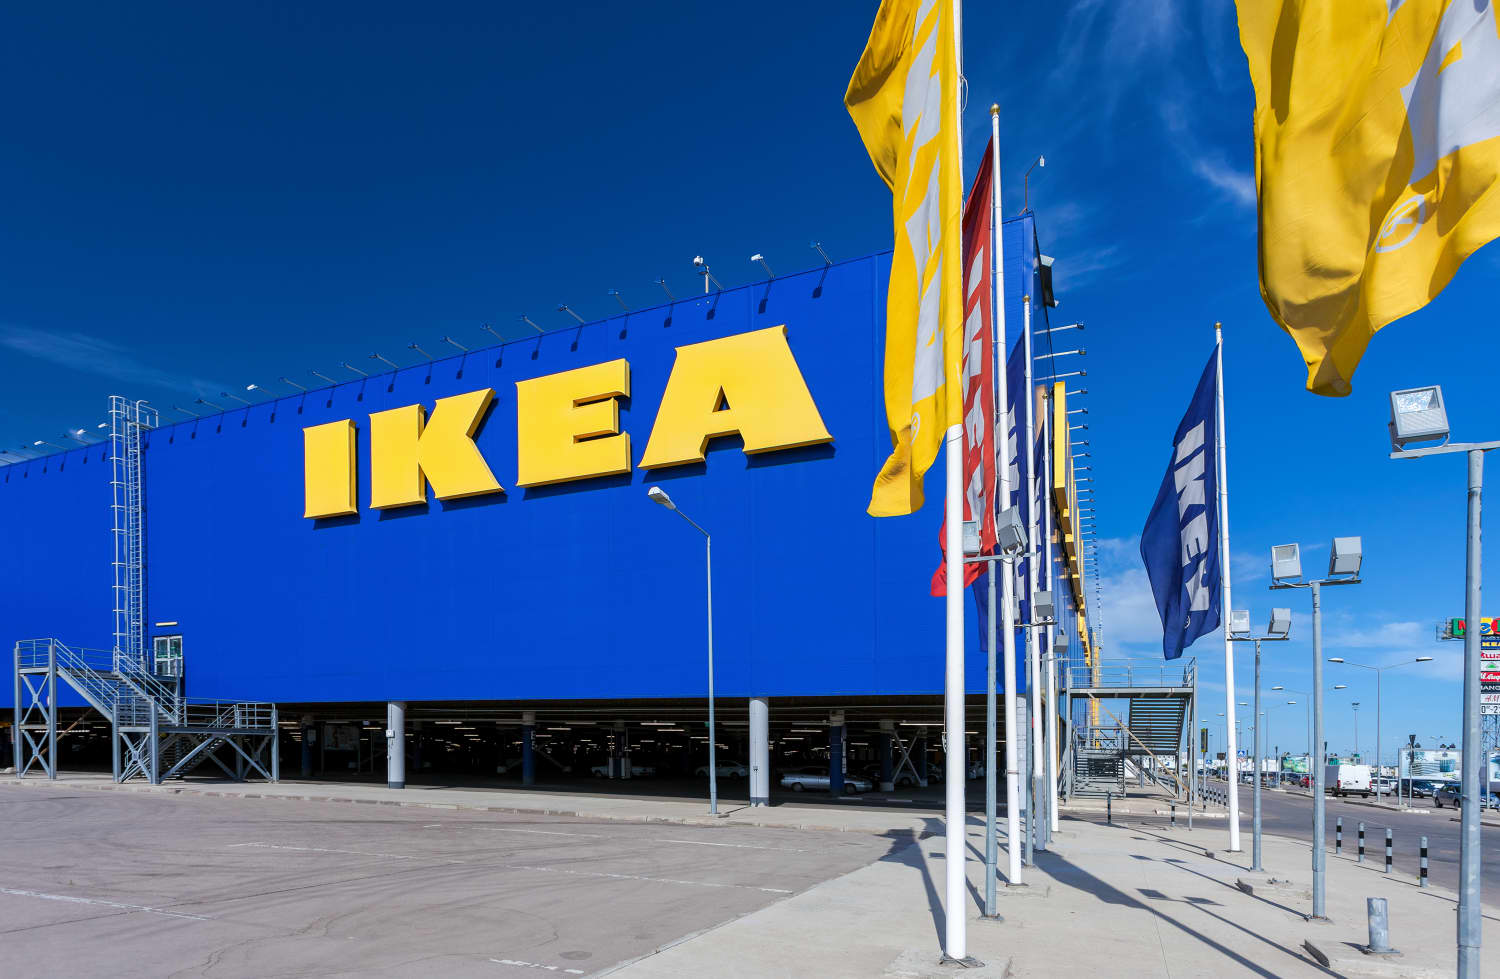 This Hidden Section of IKEA Is a Hacker's Paradise